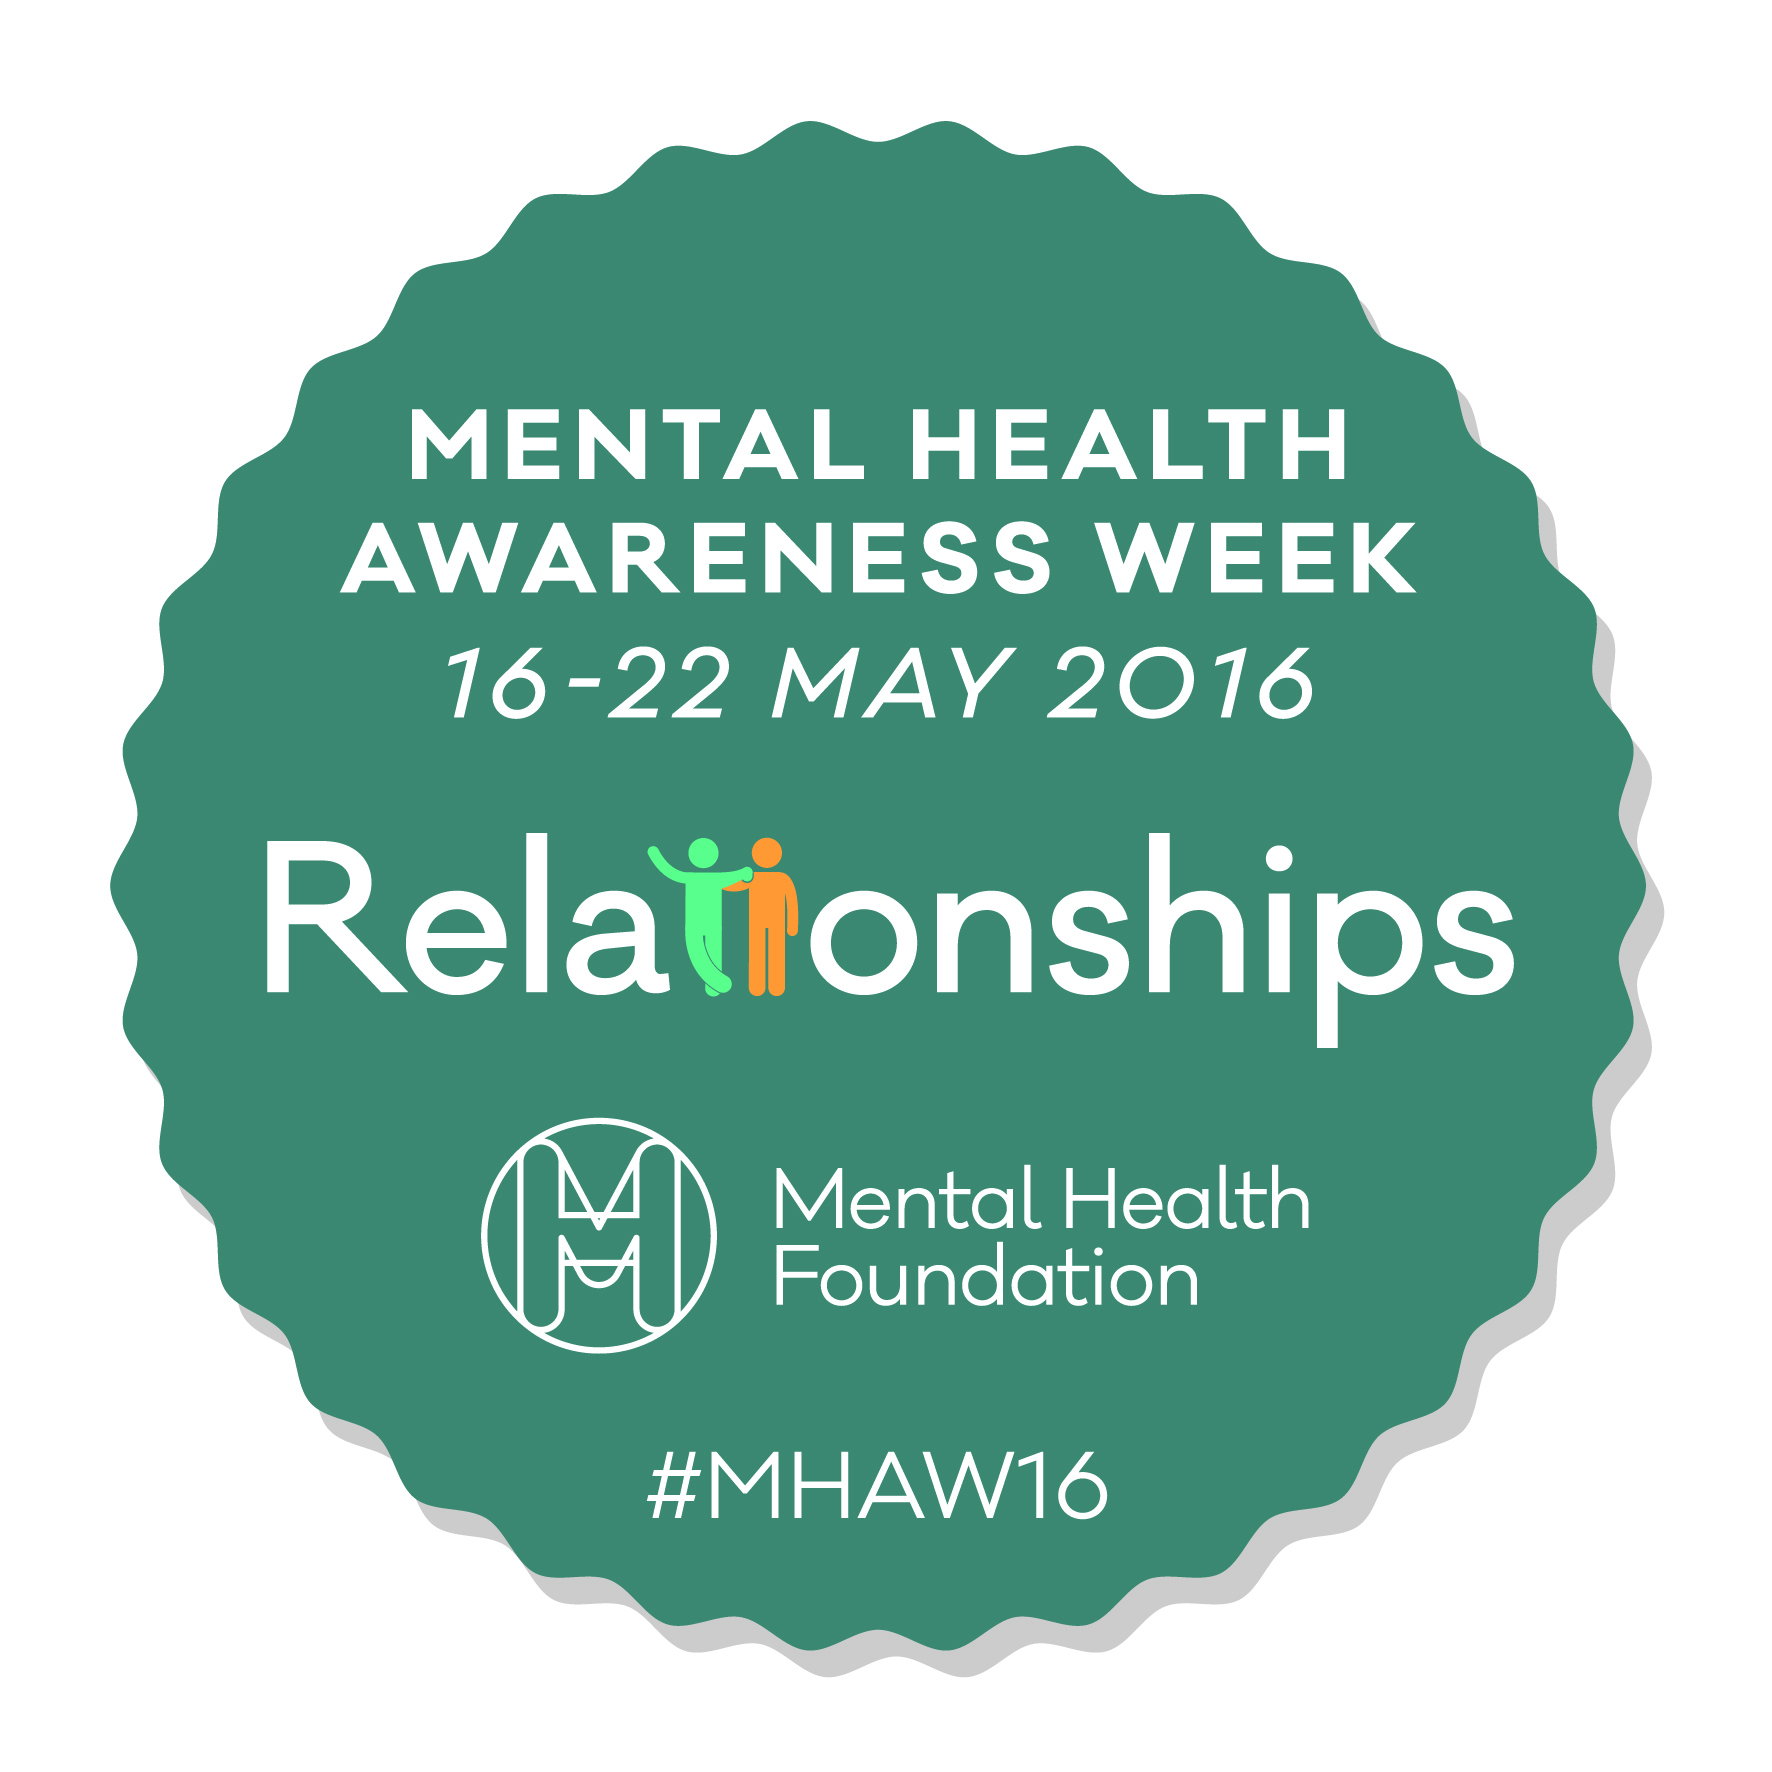 Mental Health Awareness Week - creating a supportive culture at work